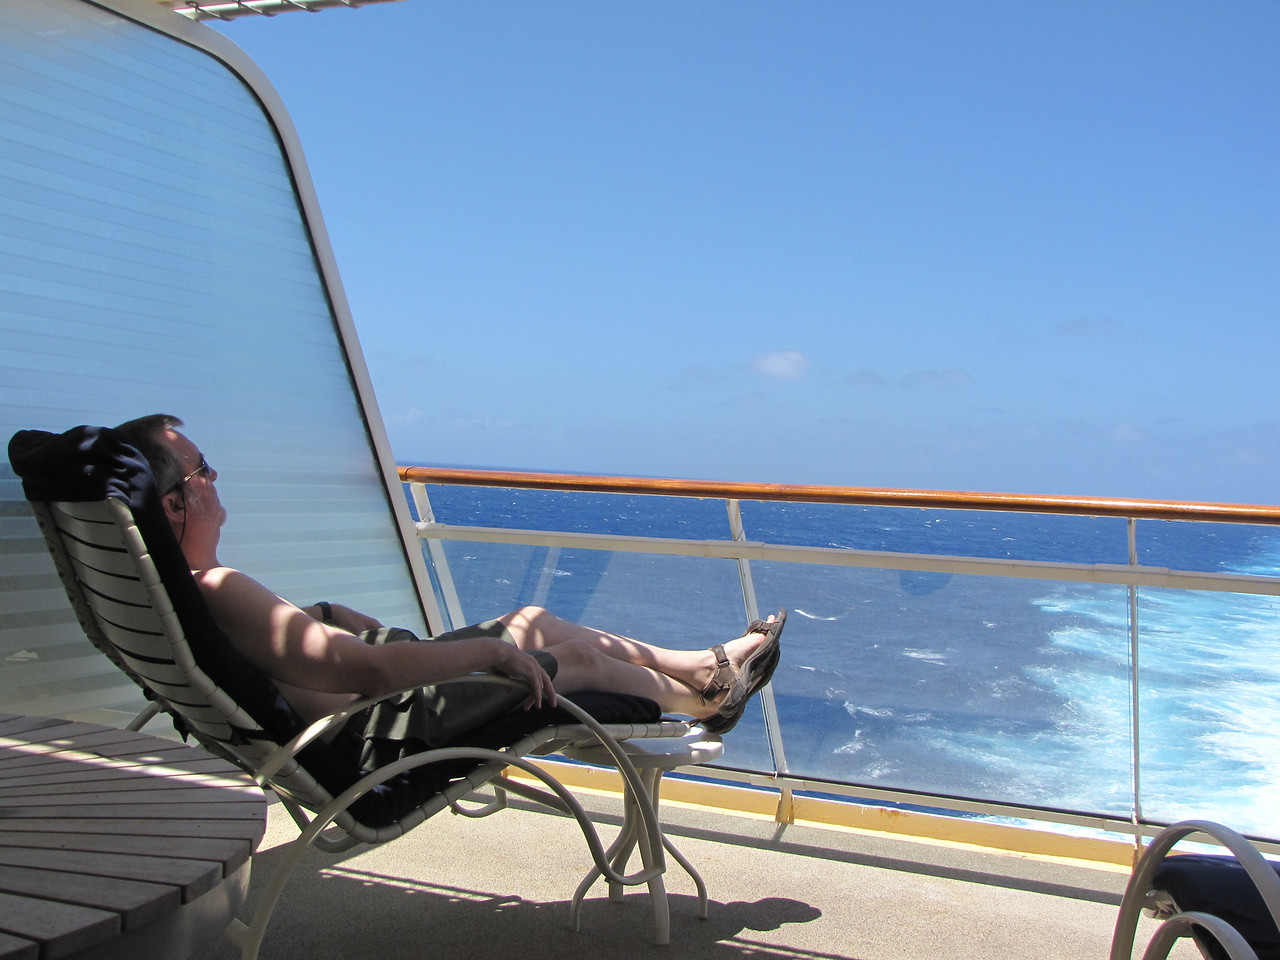 We spend much of our time on sea days lounging on our balcony.